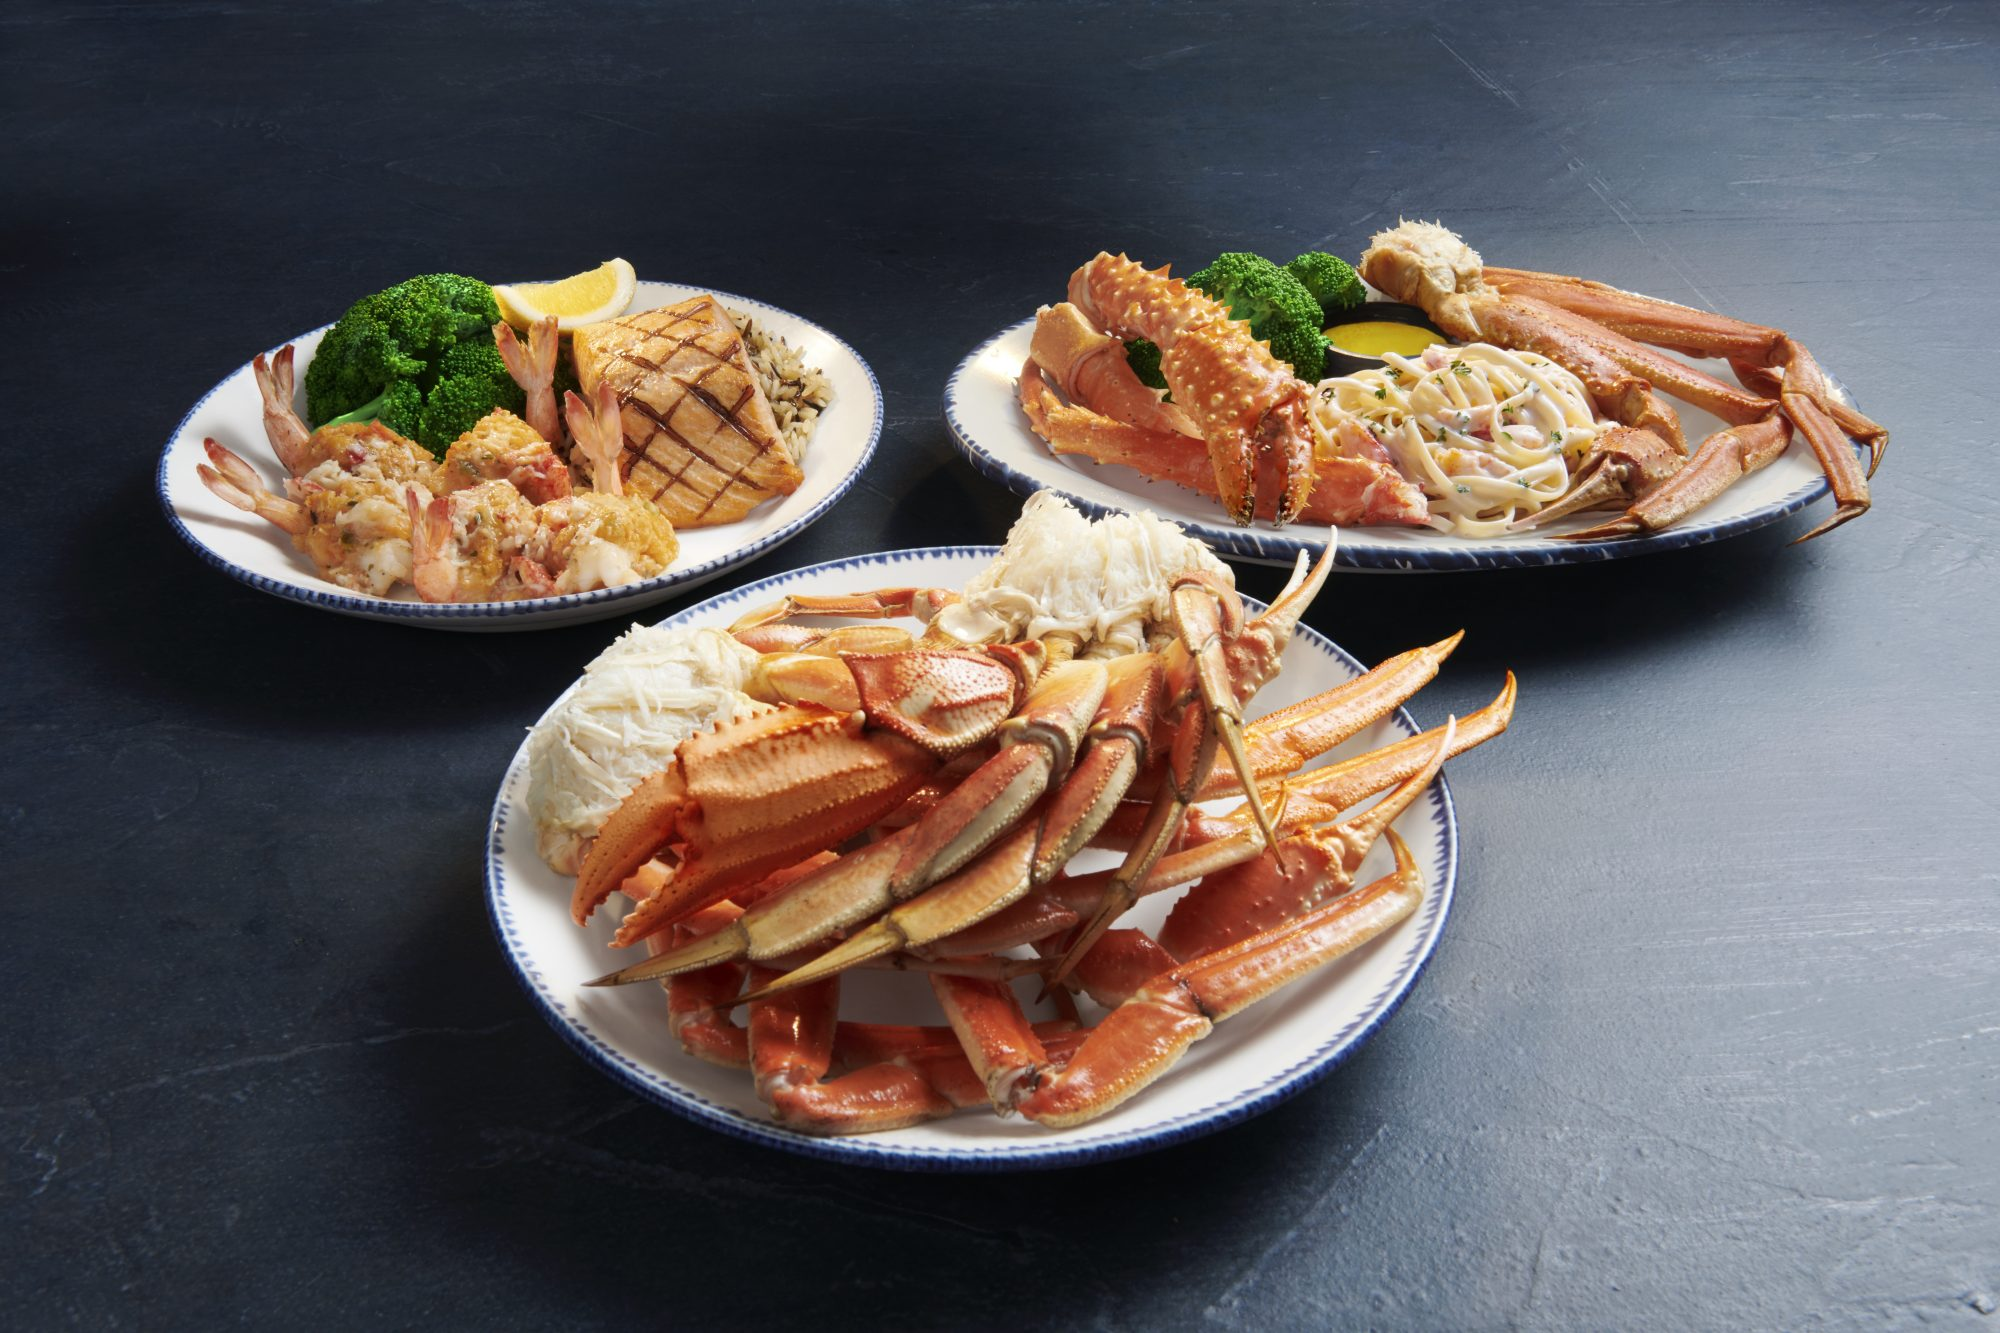 Do Red Lobster's Crabfest Entrées Hold Up After an Hour-Long Subway Ride?